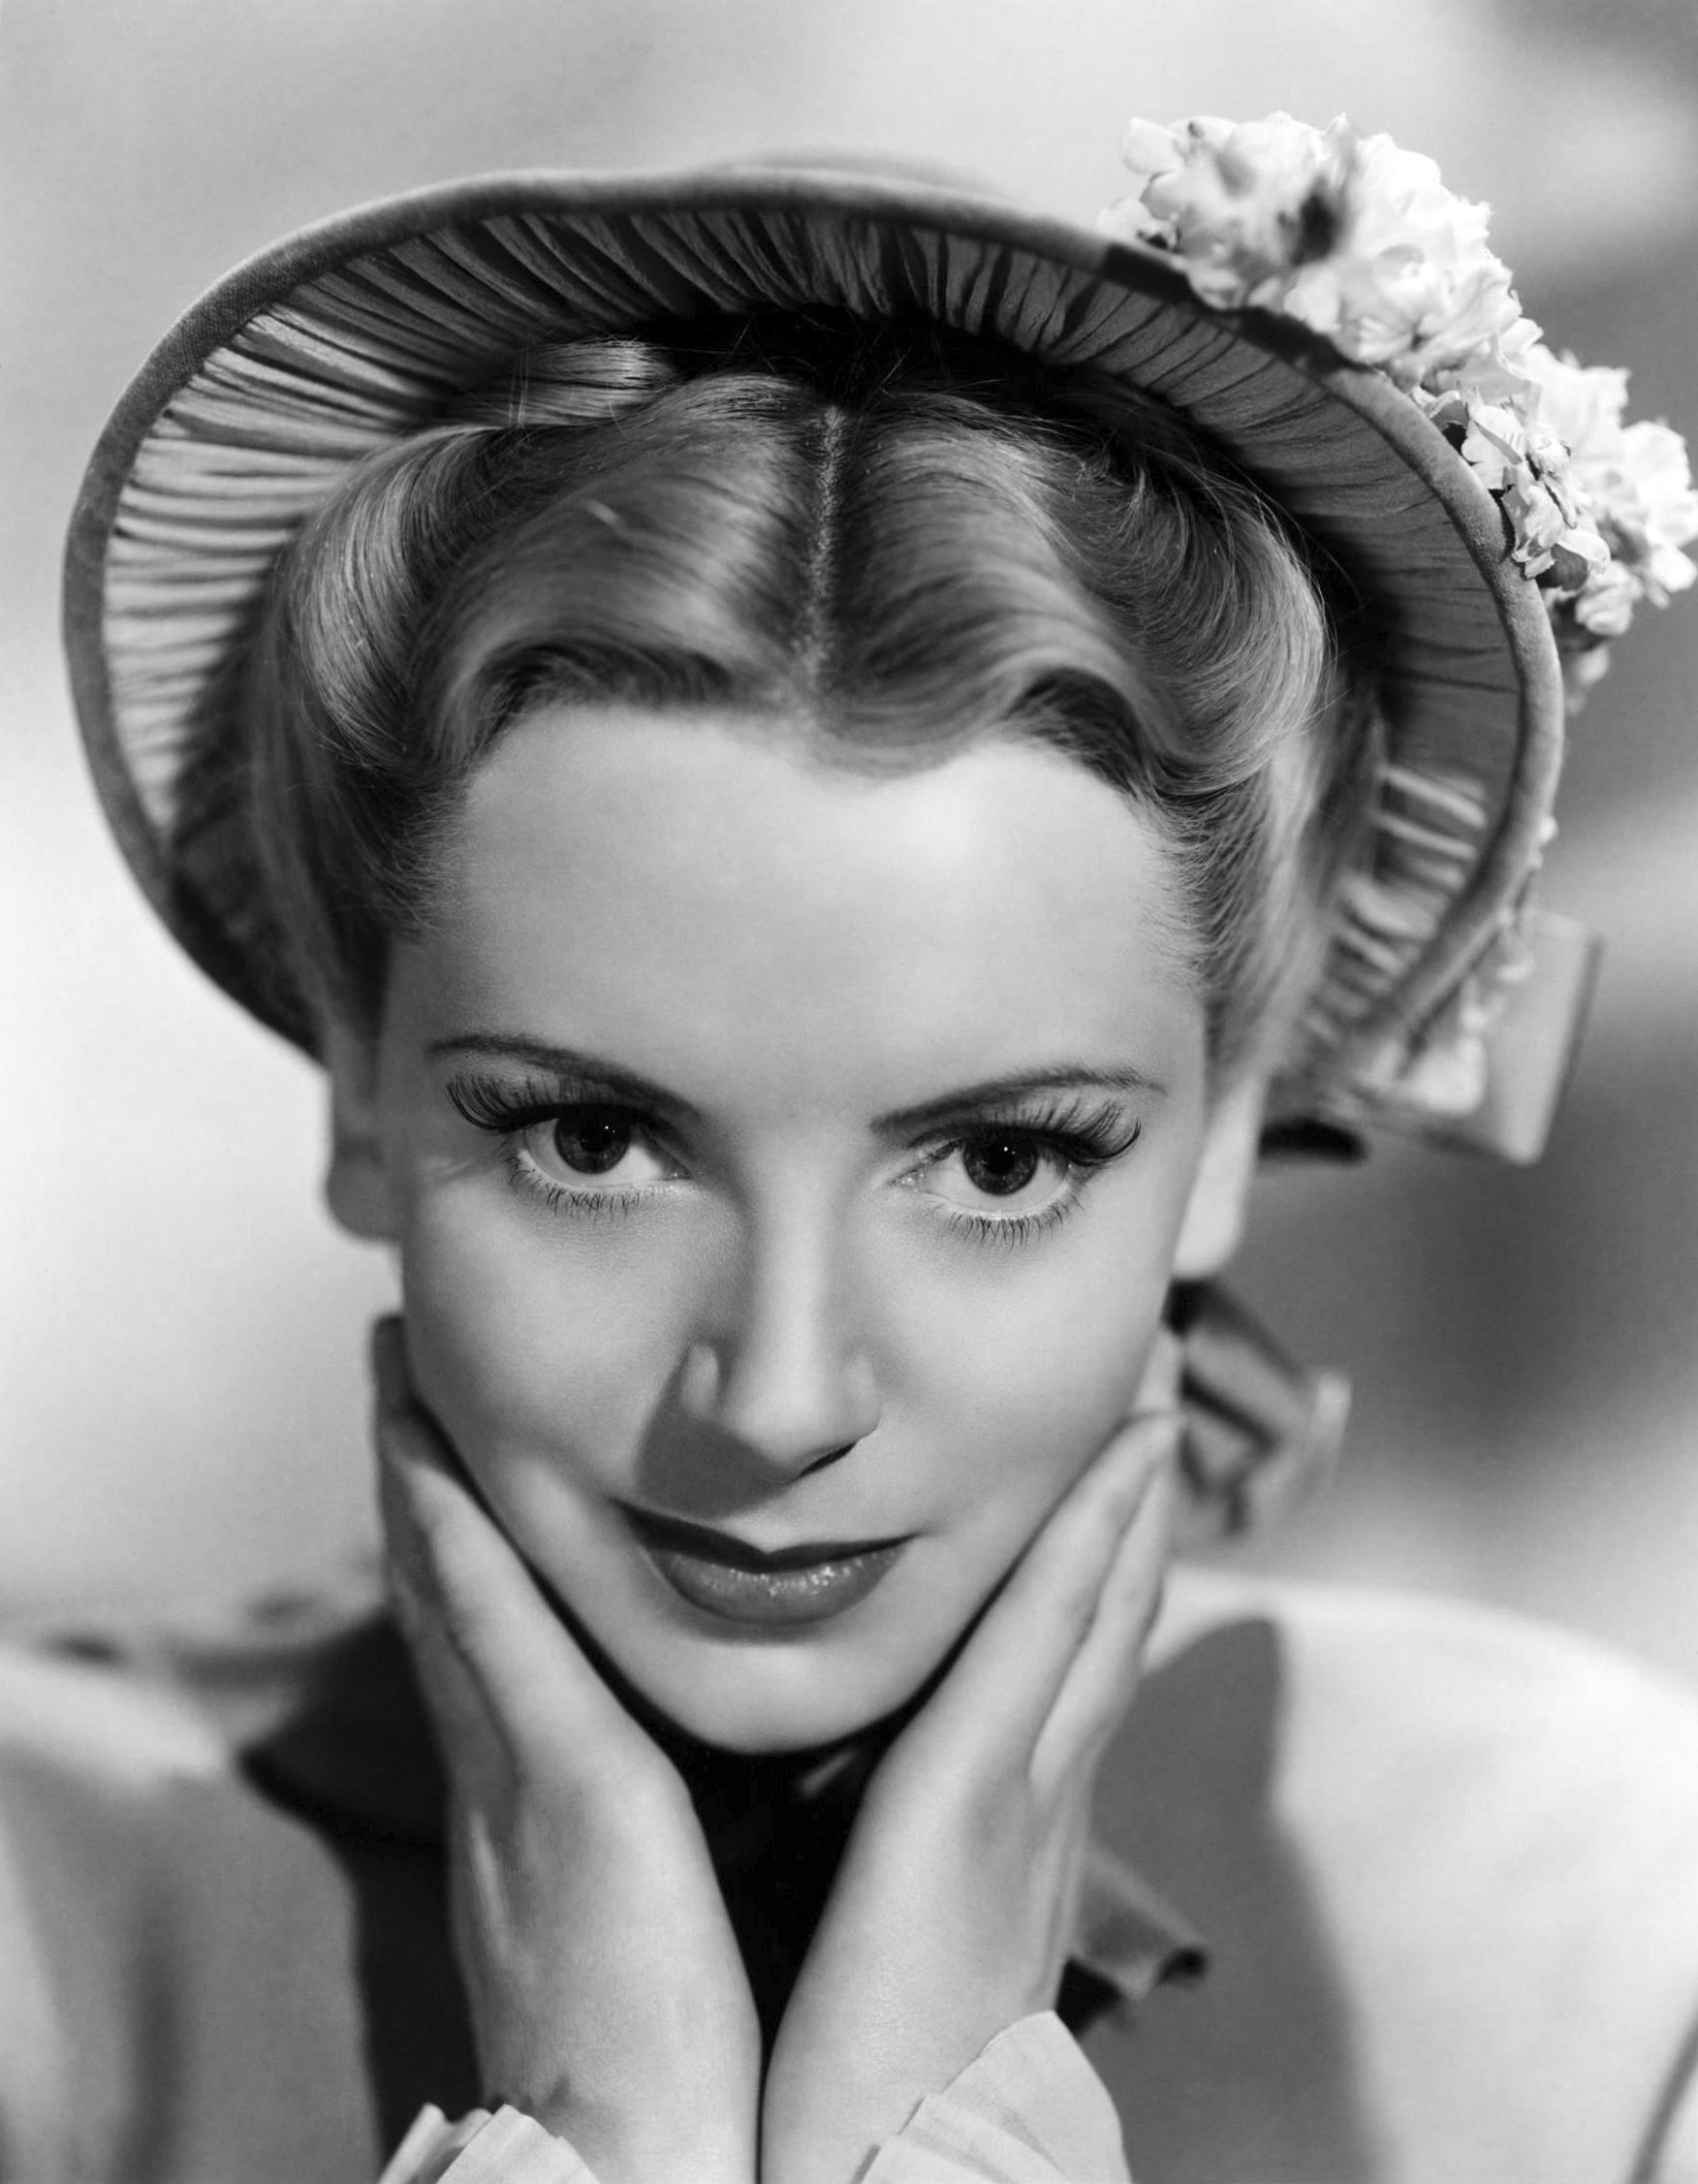 """Deborah Kerr...she was nominated six times for the Academy Award for Best Actress, but never won, the most of any actress. In 1994, however, having already received honorary awards from the Cannes Film Festival and BAFTA, she received an Academy Honorary Award with a citation recognising her as """"an artist of impeccable grace and beauty, a dedicated actress whose motion picture career has always stood for perfection, discipline and elegance"""""""